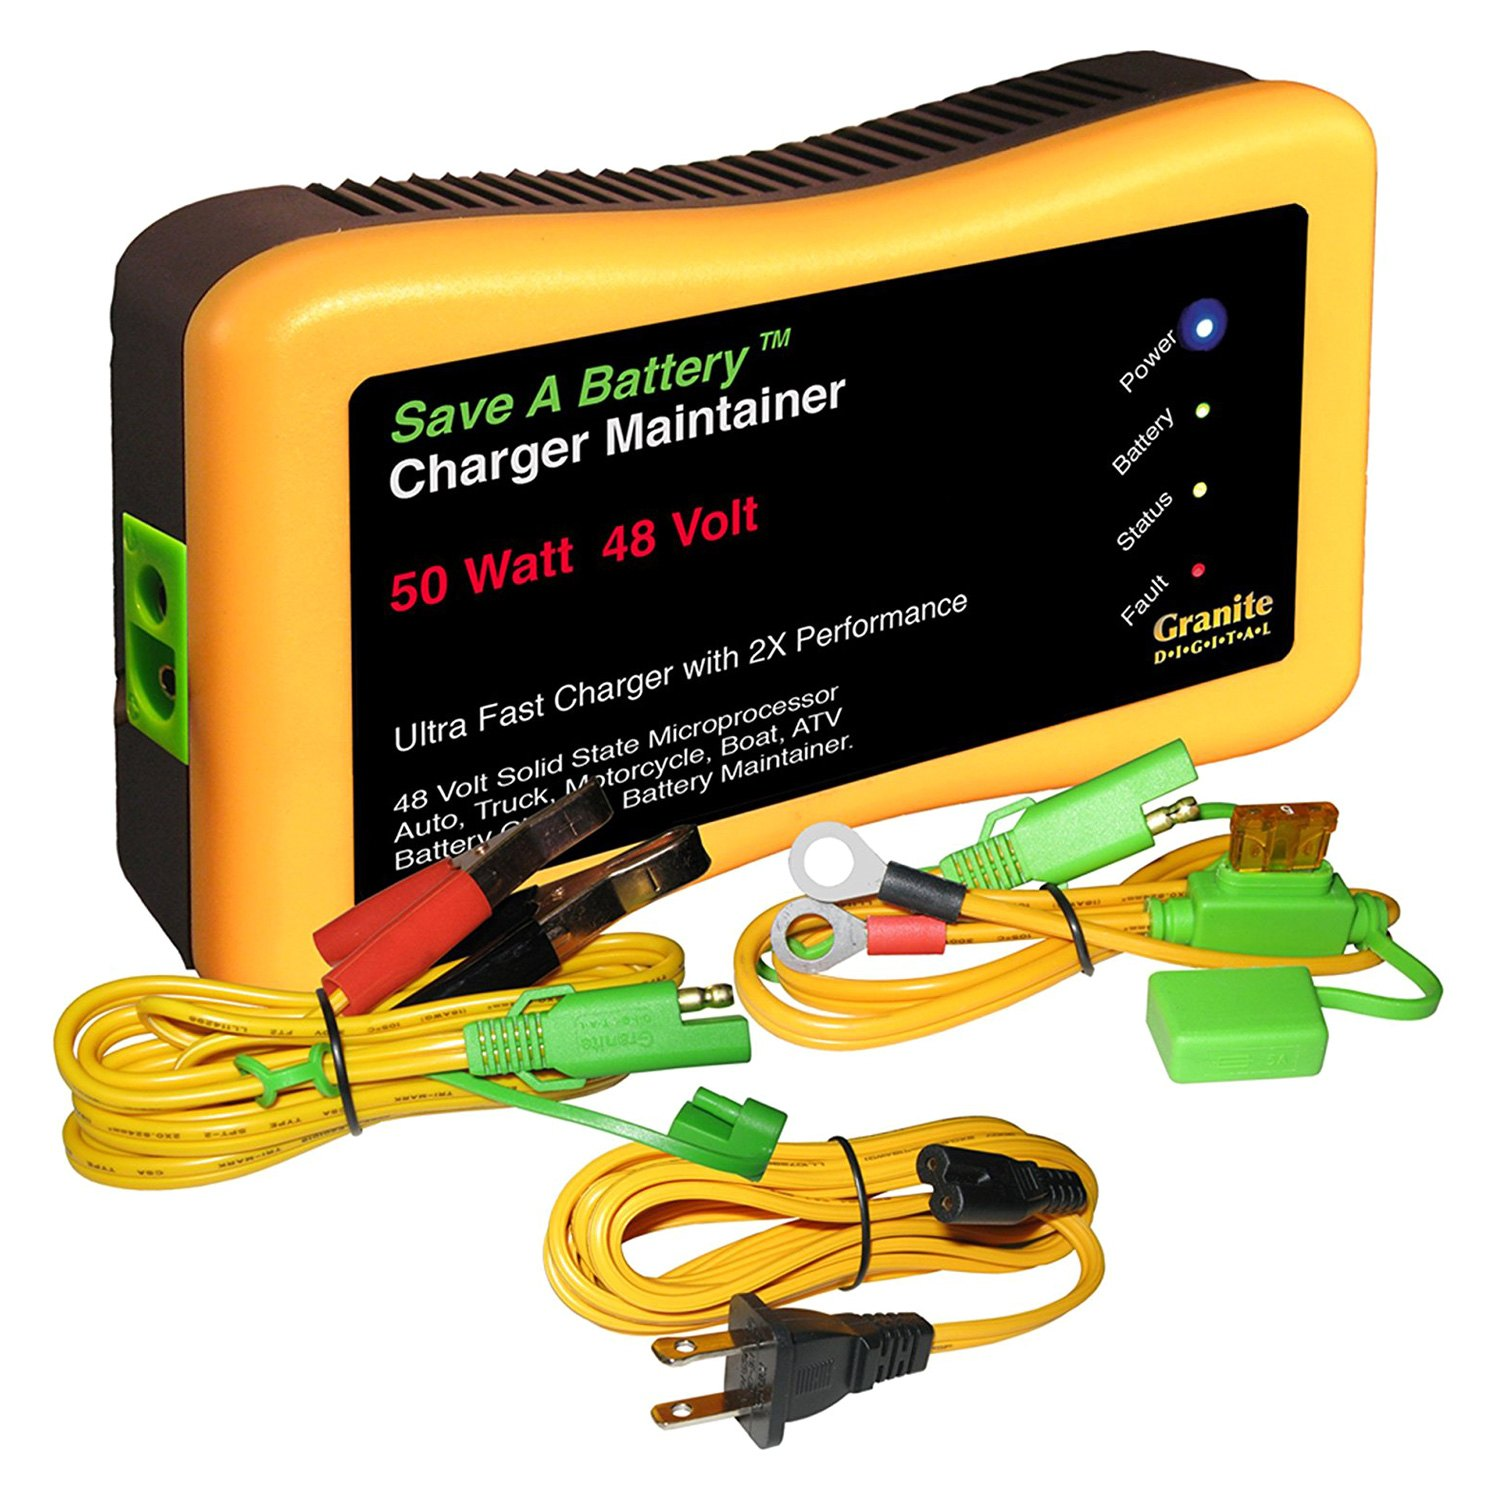 Granite Digital® - Save A Battery Charger/Maintainer